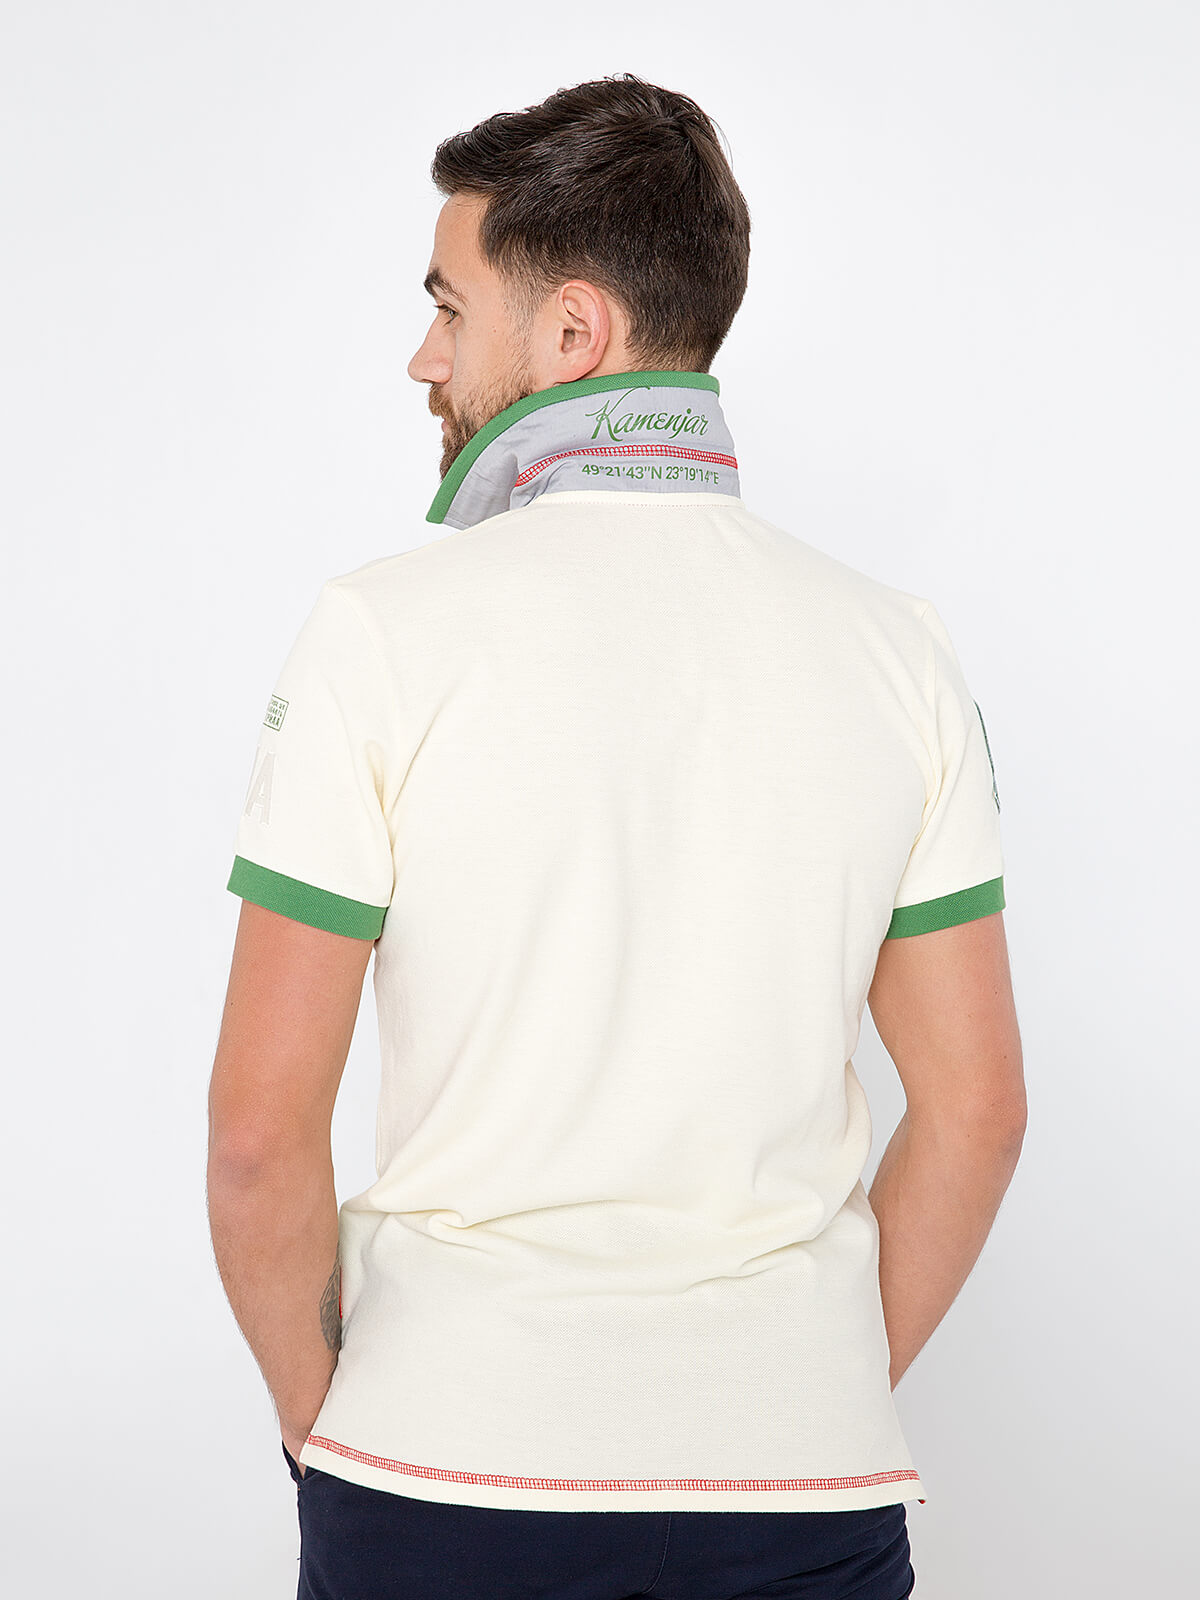 Men's Polo Shirt Ivan Franko. Color ivory.  Technique of prints applied:   embroidery, silkscreen printing, chevron.